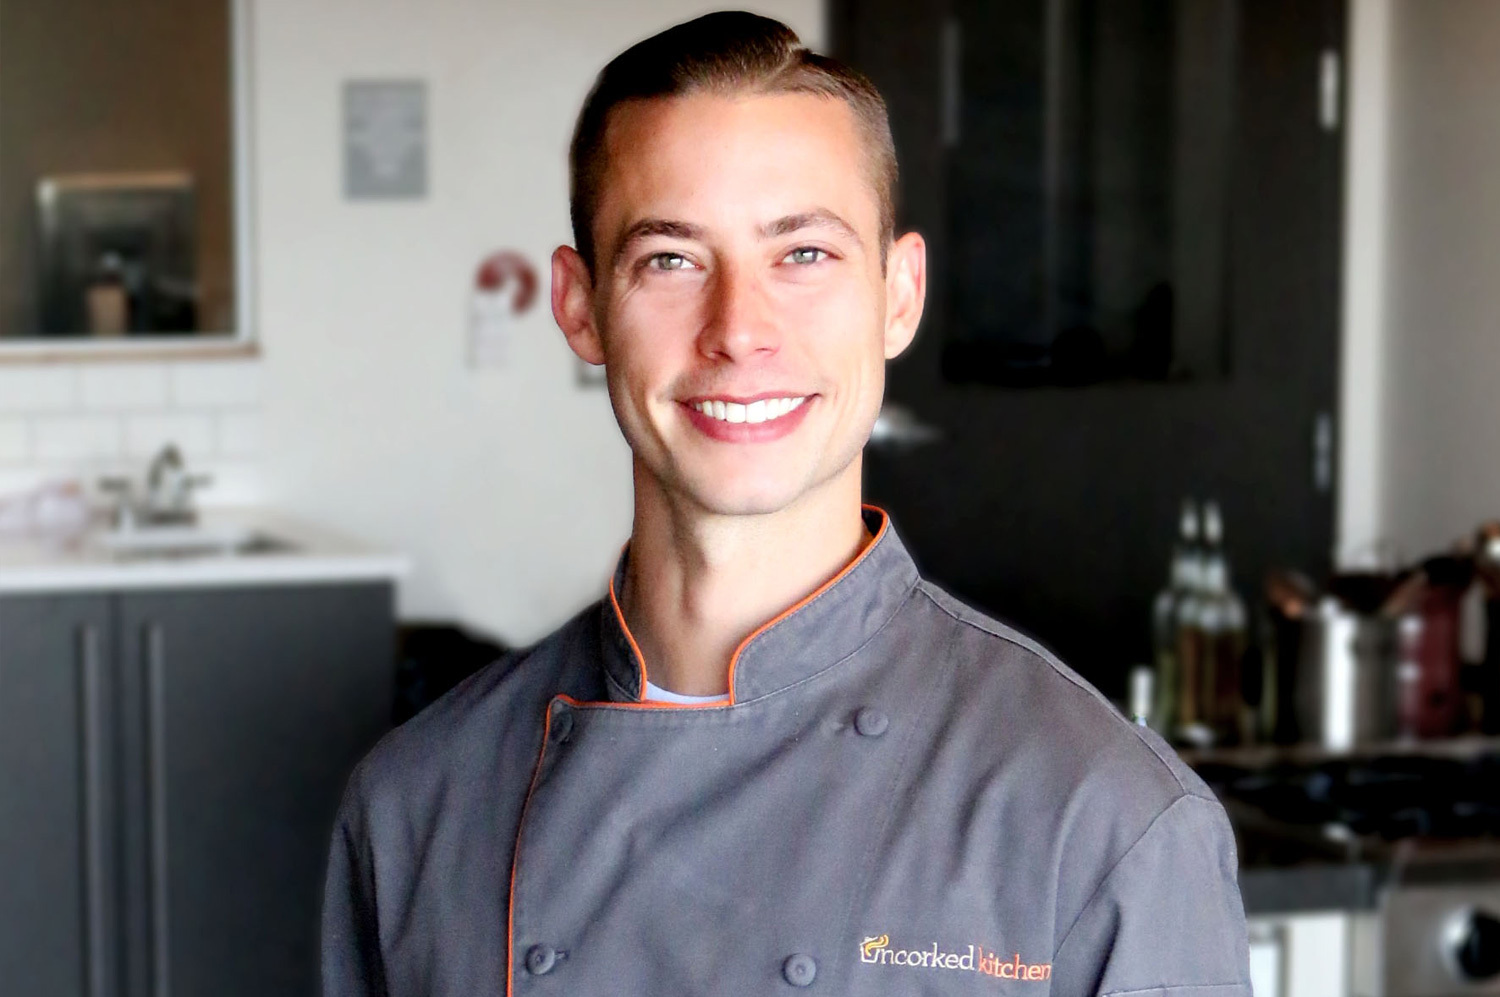 CHEF LOGAN SCHEER